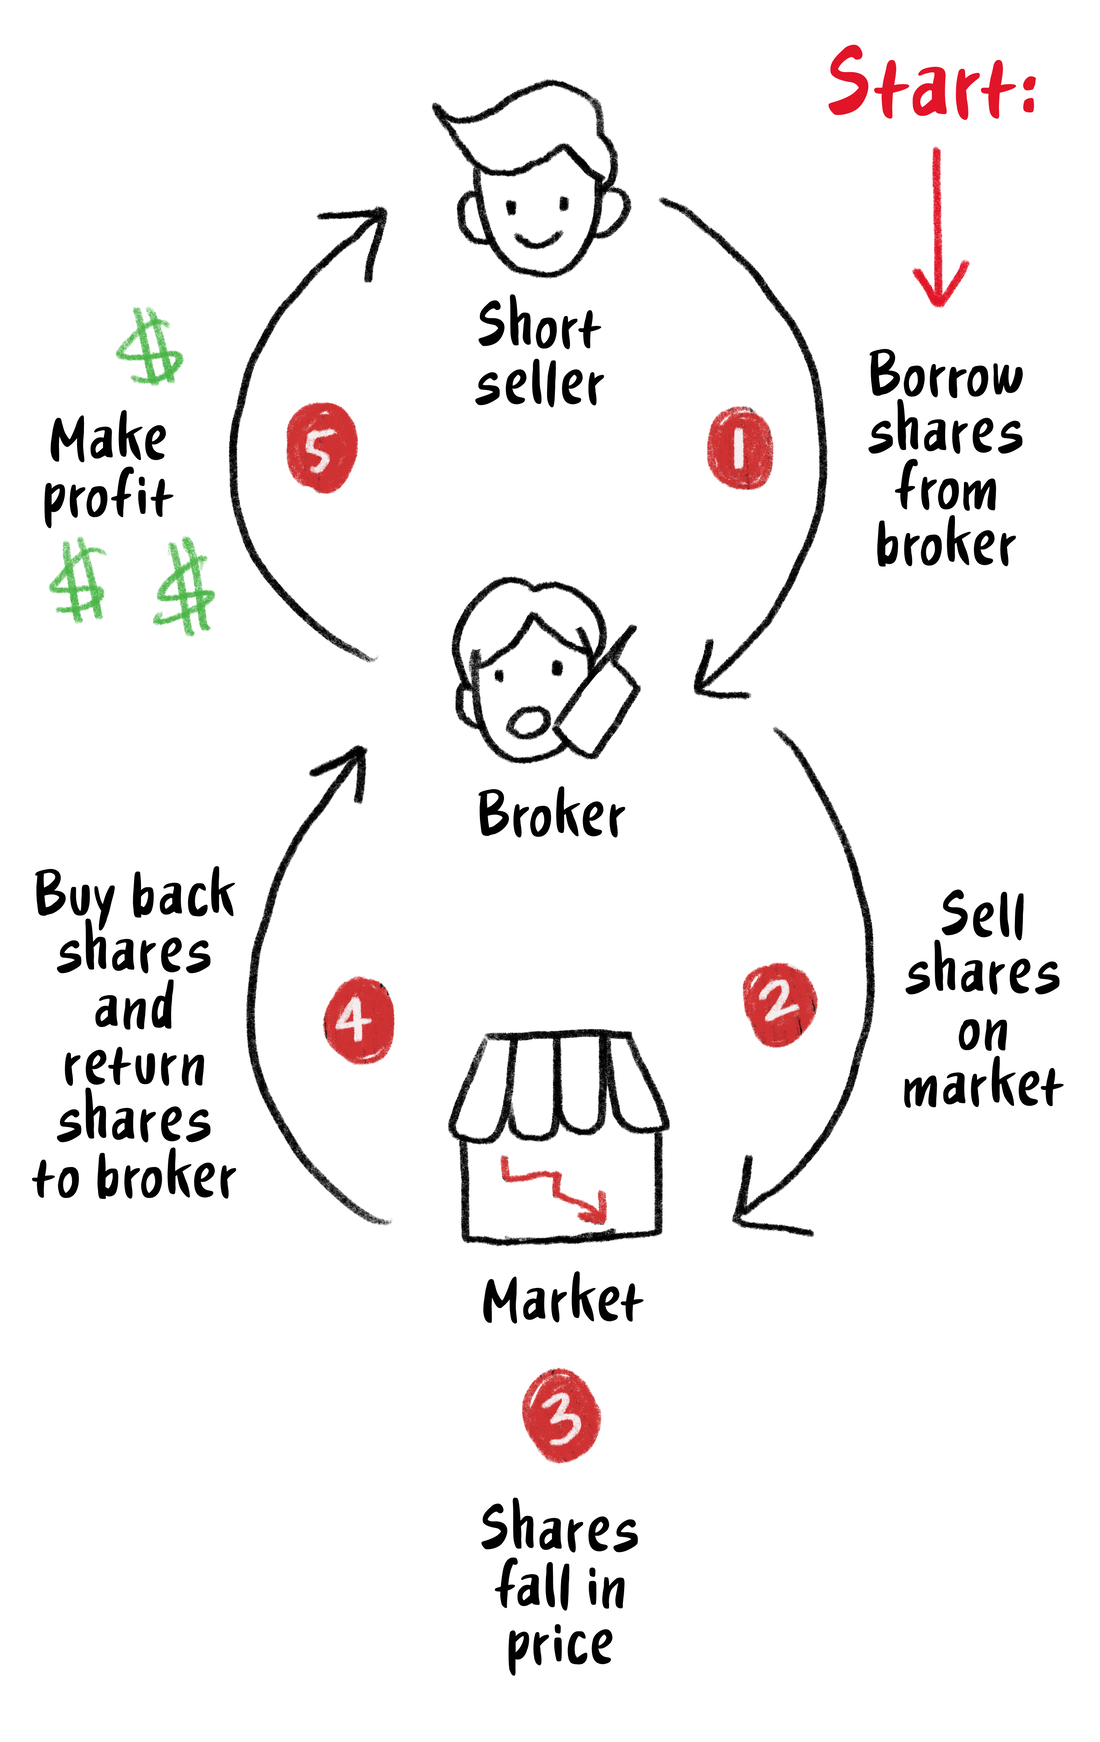 Flowchart showing the relationship between a short seller, broker and the market.